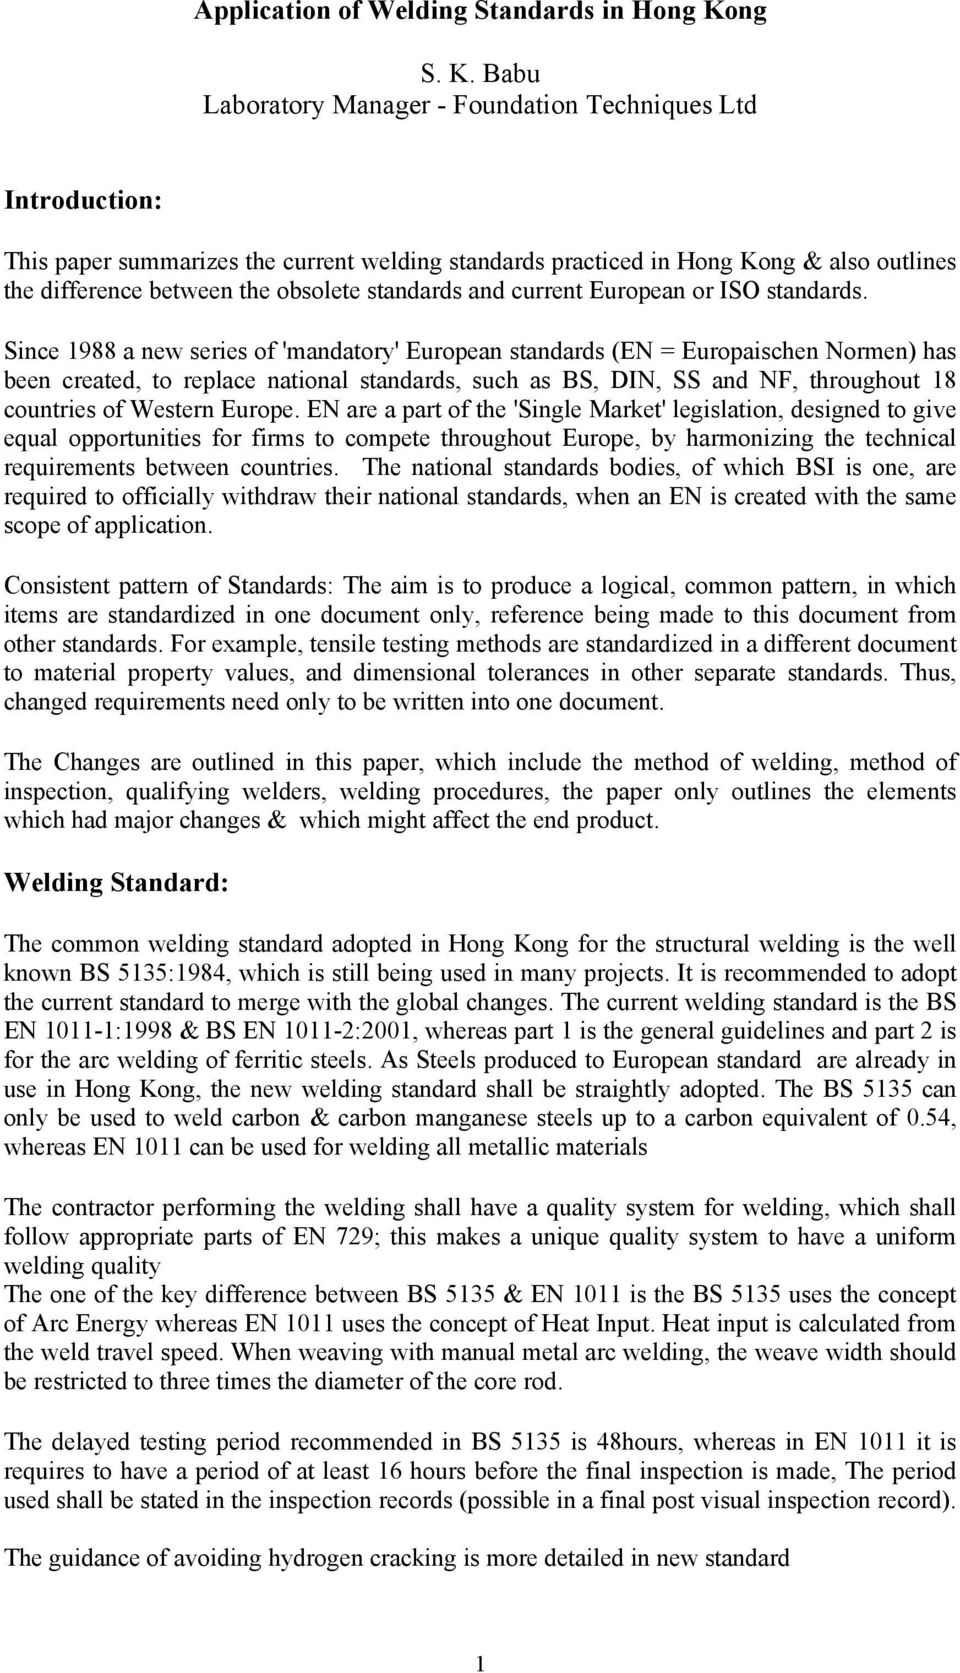 Babu Laboratory Manager - Foundation Techniques Ltd Introduction: This paper summarizes the current welding standards practiced in Hong Kong & also outlines the difference between the obsolete